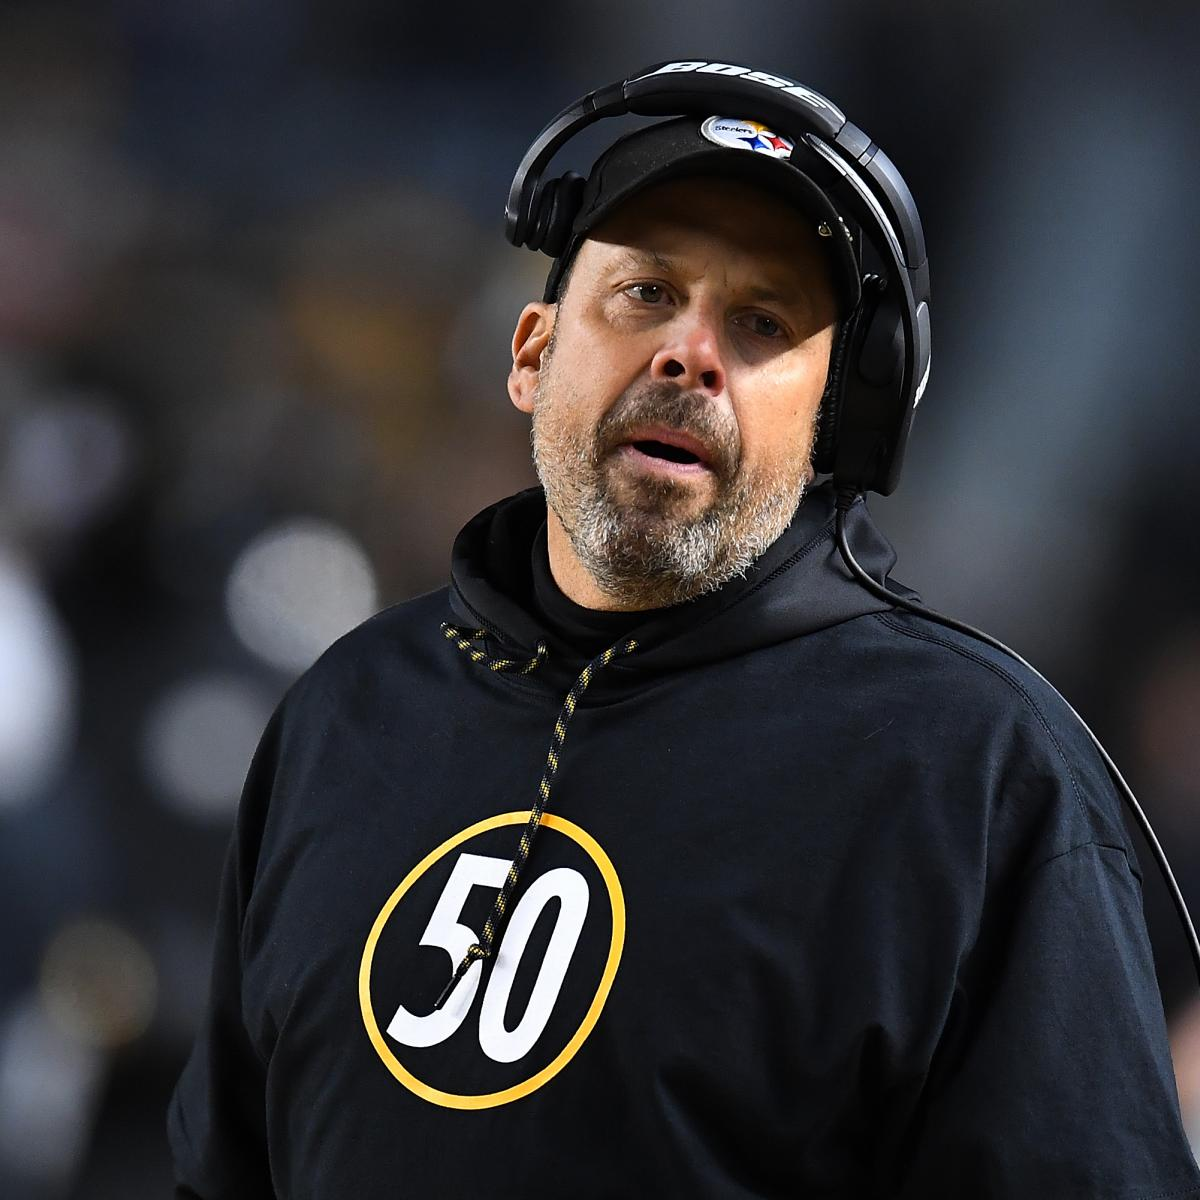 Pittsburgh Steelers Mike Tomlin S New Contract Ushers In: Todd Haley Will Not Return As Steelers OC After Playoff